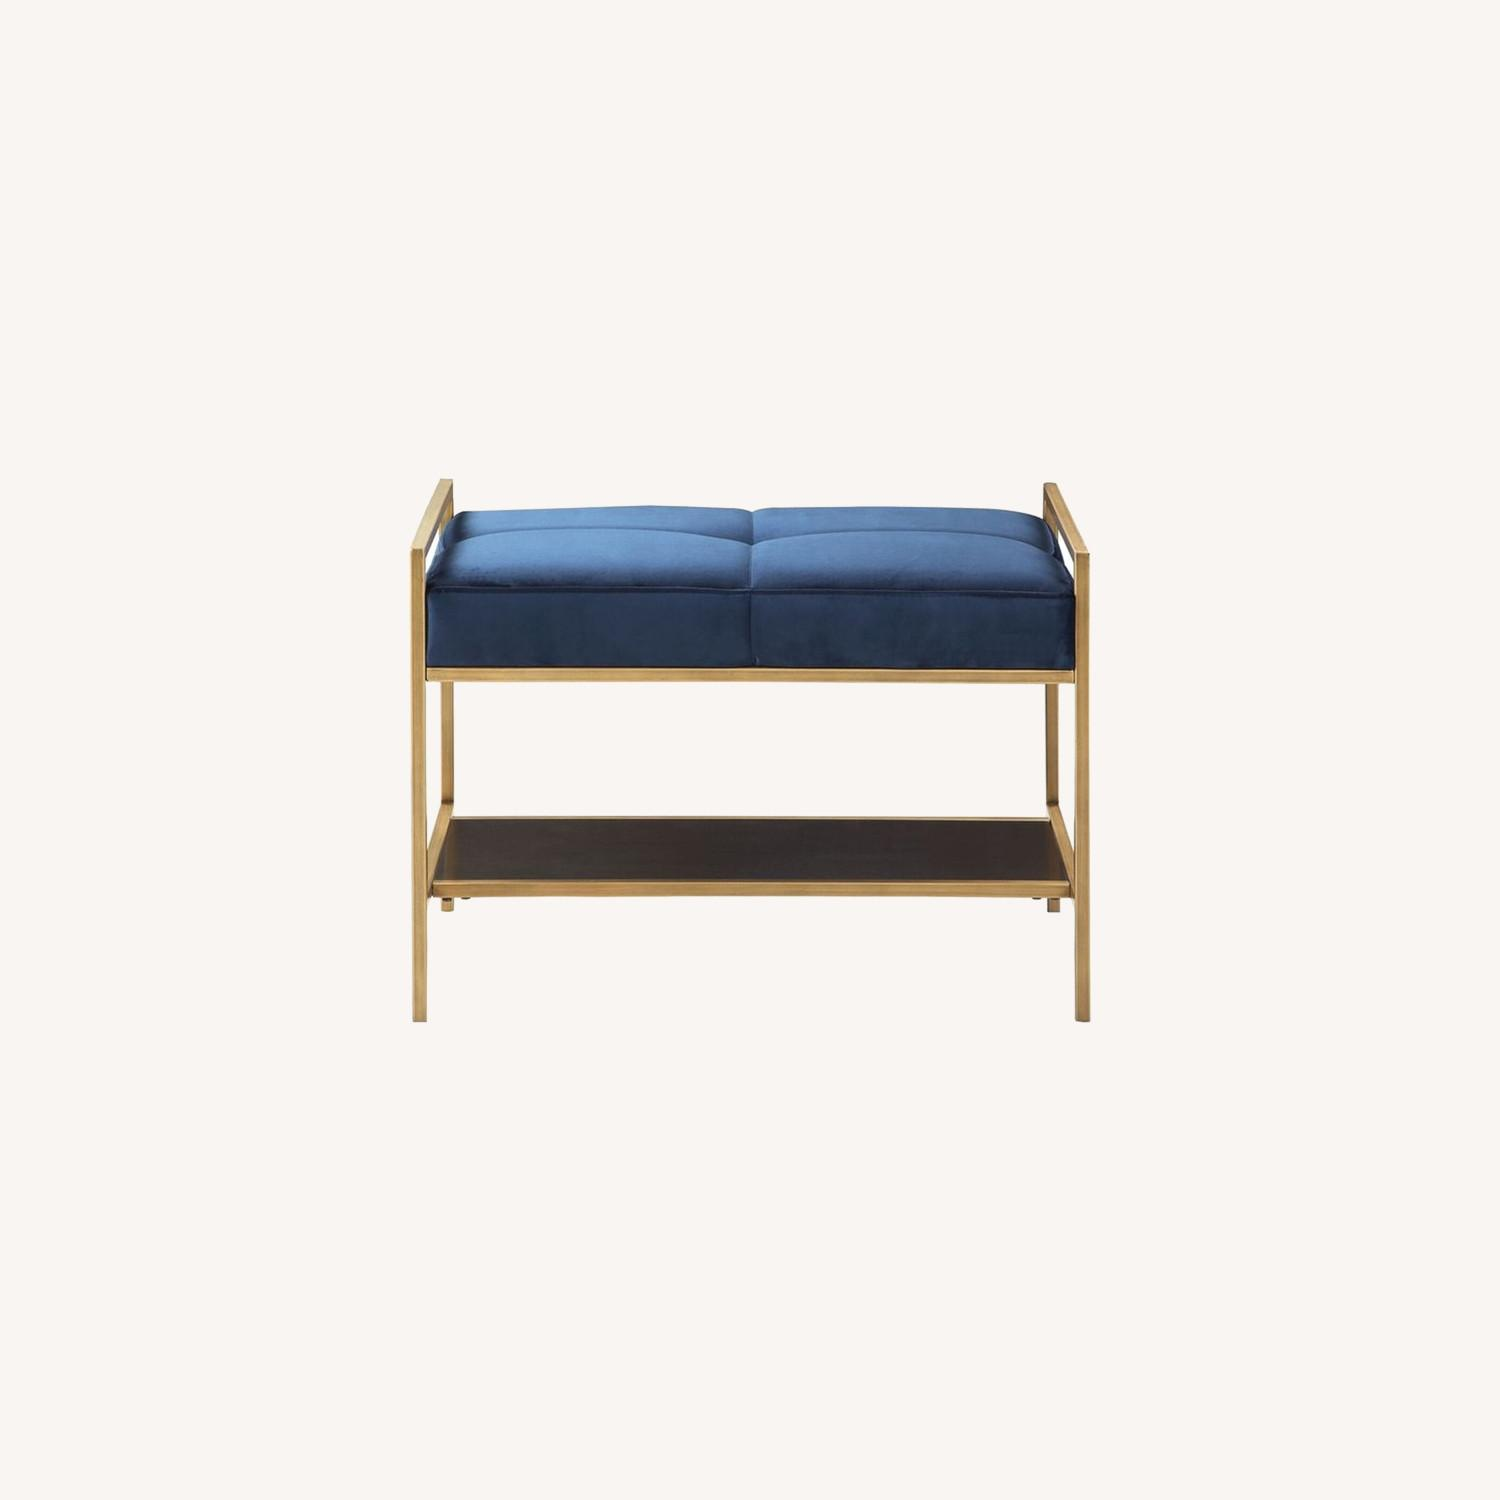 Cozy Bench In A Navy Blue Velvet Fabric - image-3